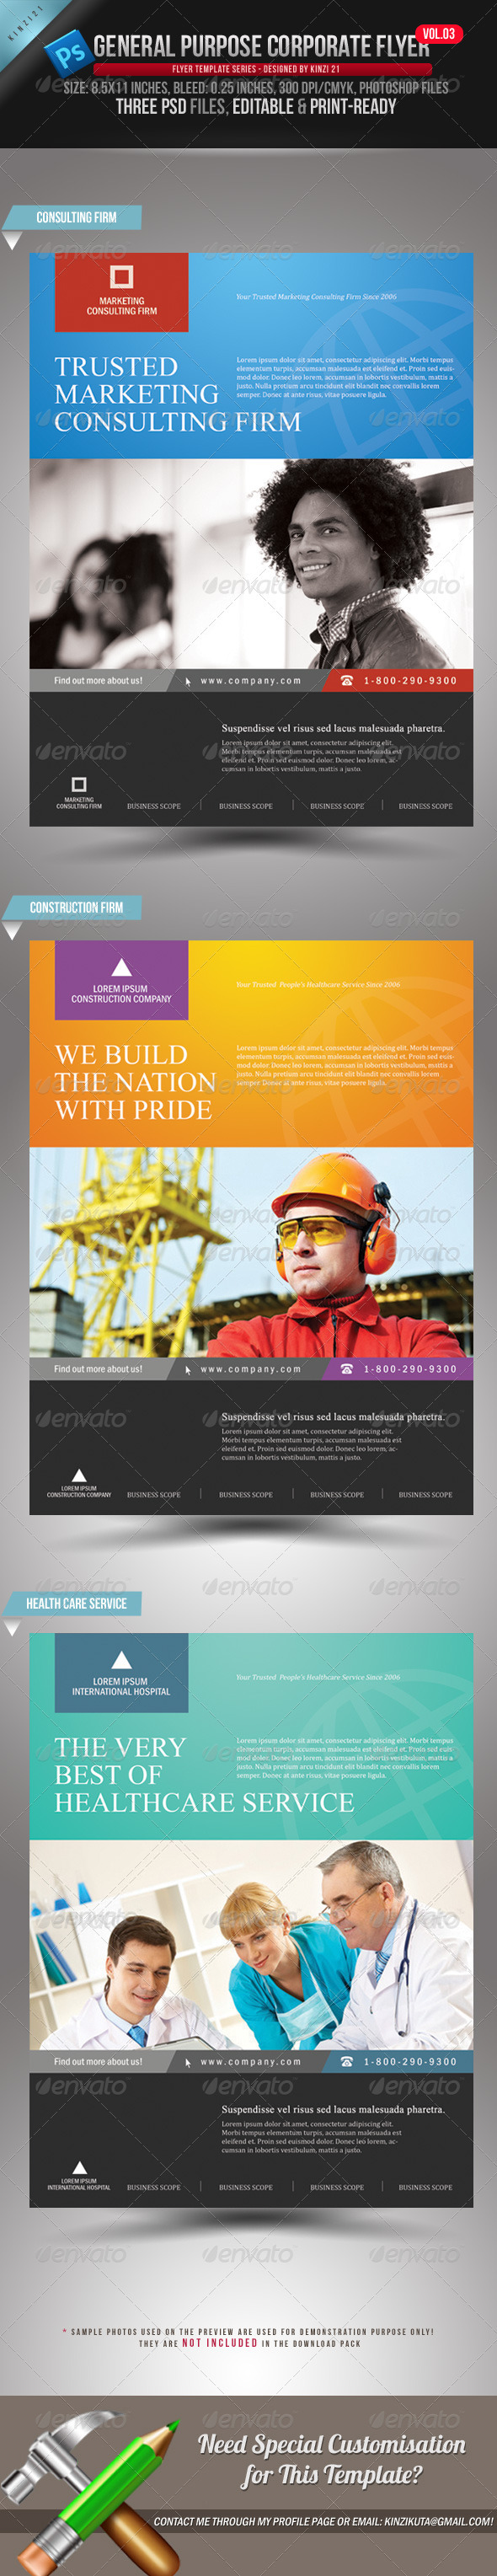 GraphicRiver General Purpose Corporate Flyer Vol 03 1694091